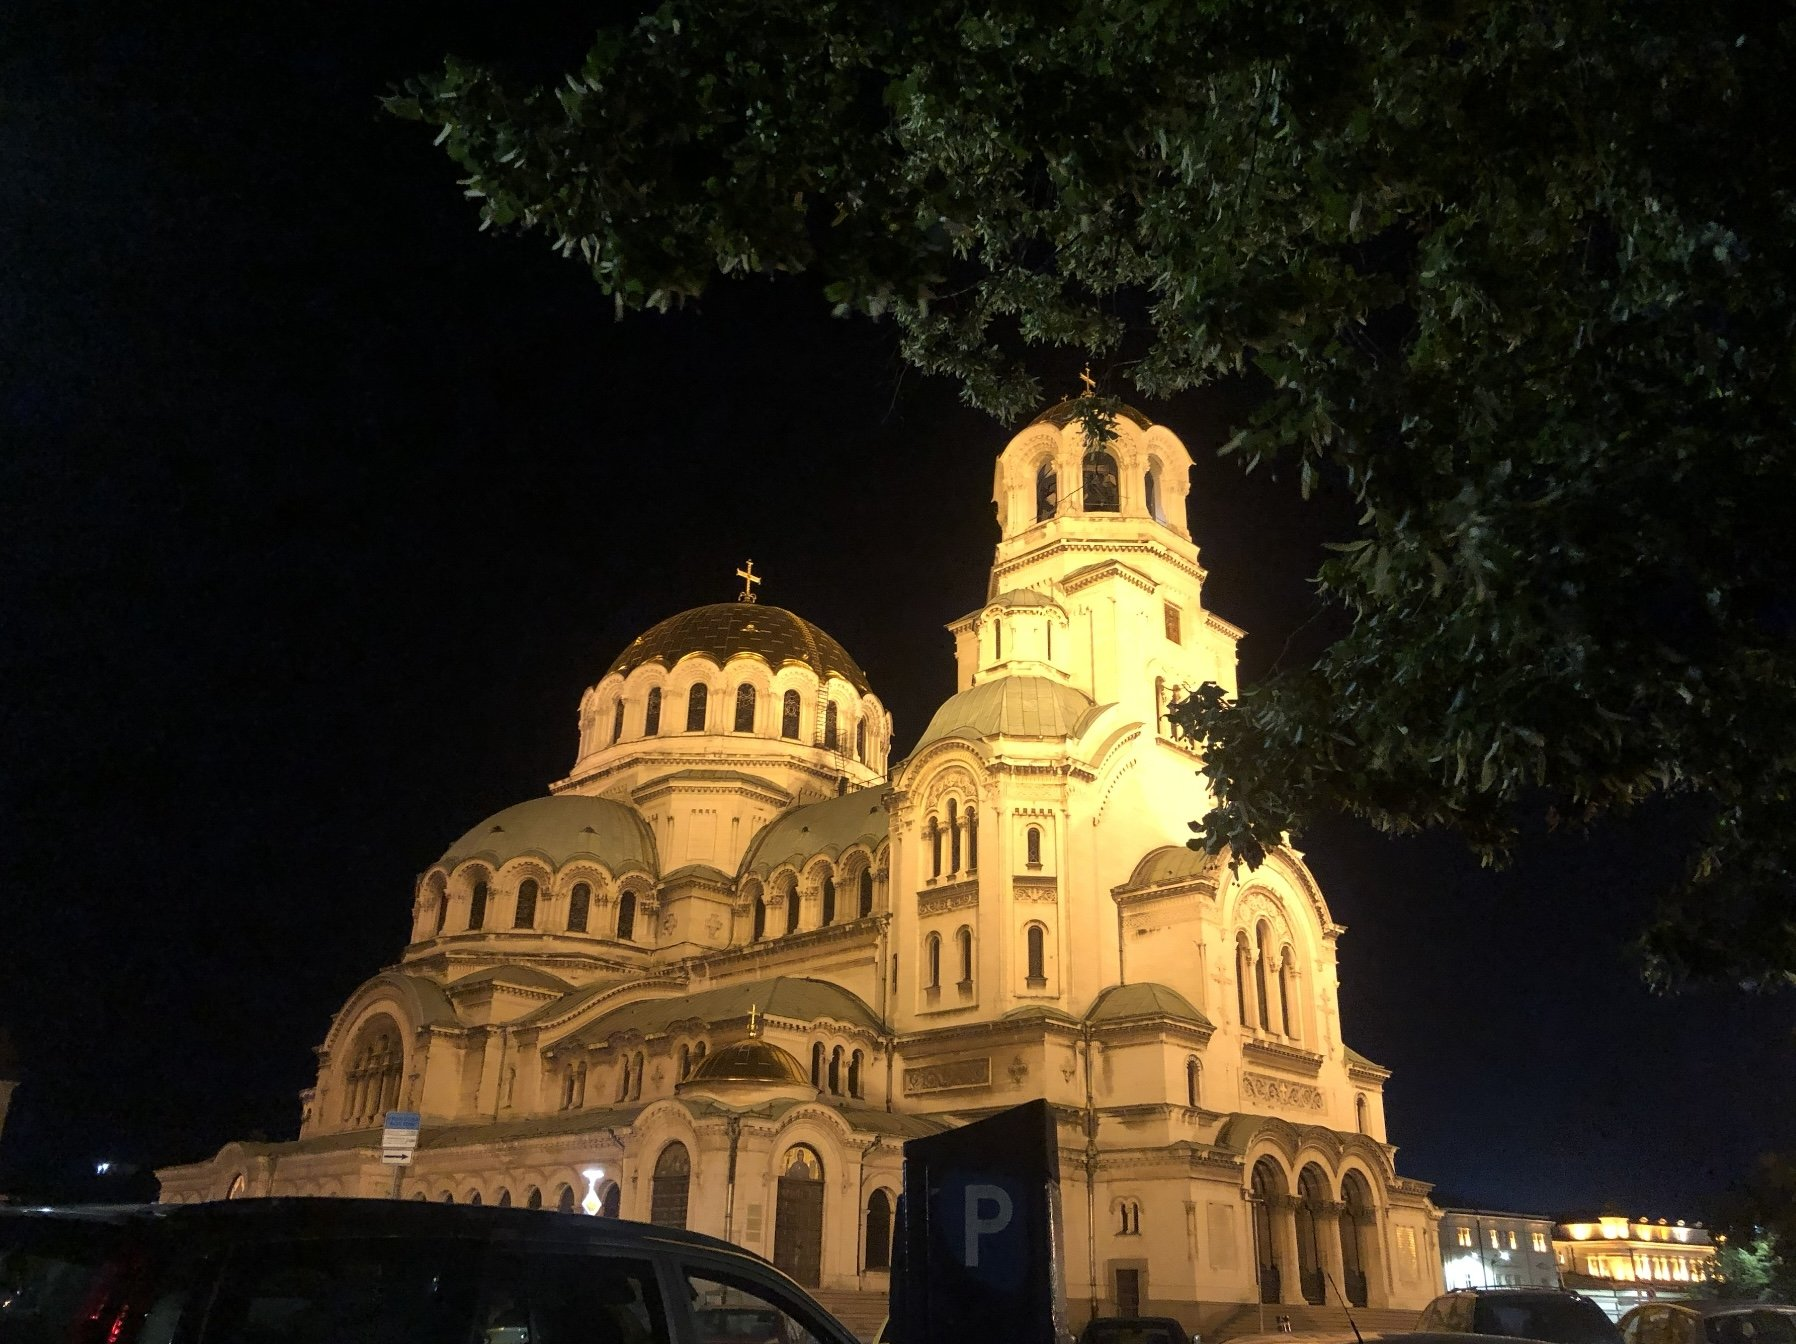 The Alexander Nevsky Cathedral at night, Sofia, Bulgaria.